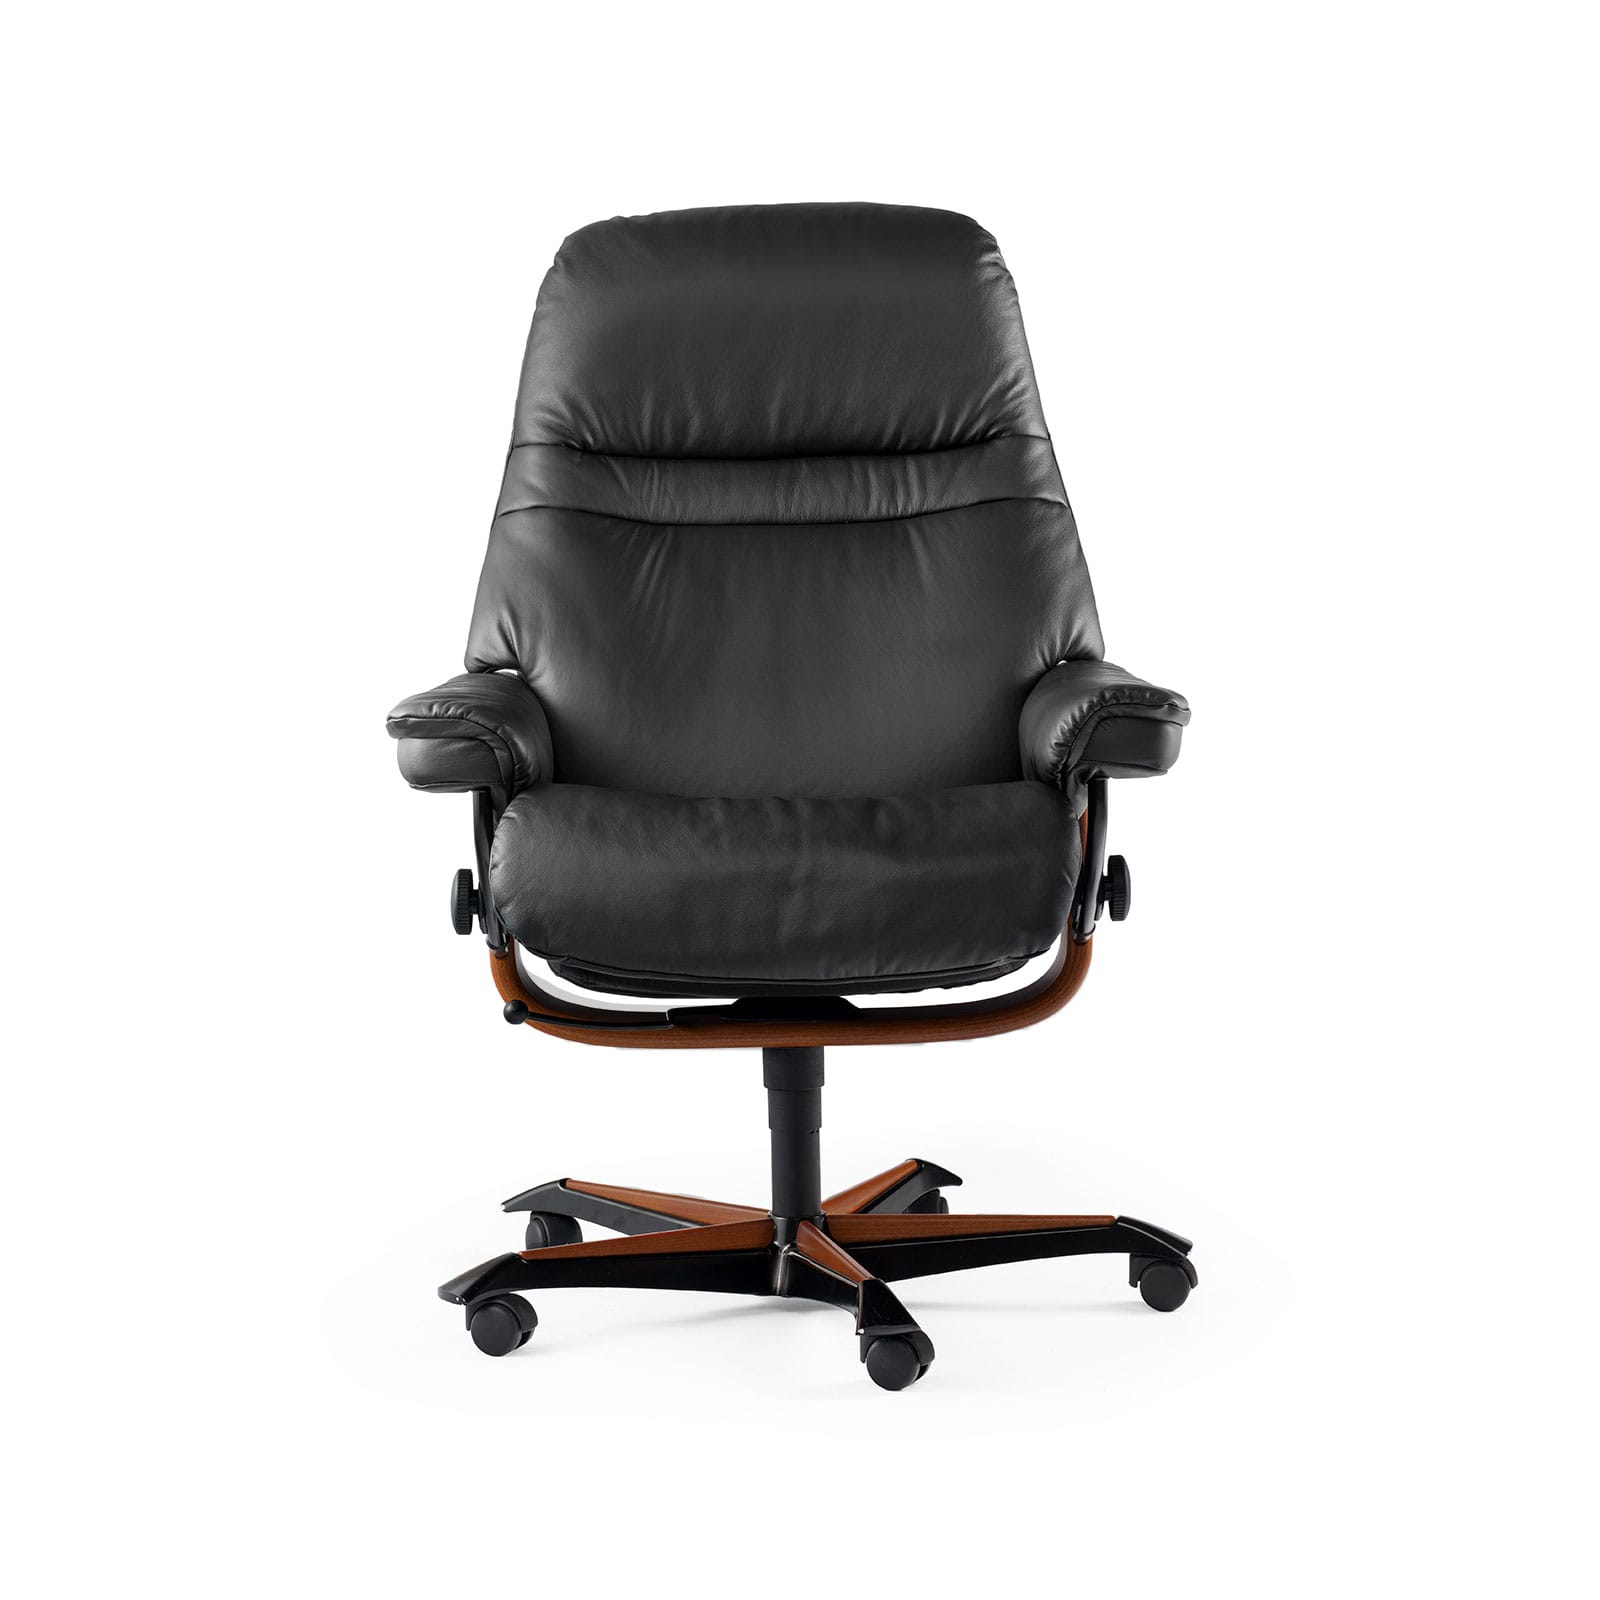 Stressless Bürostuhl Stressless Sessel Sunrise Home Office M Paloma Rock